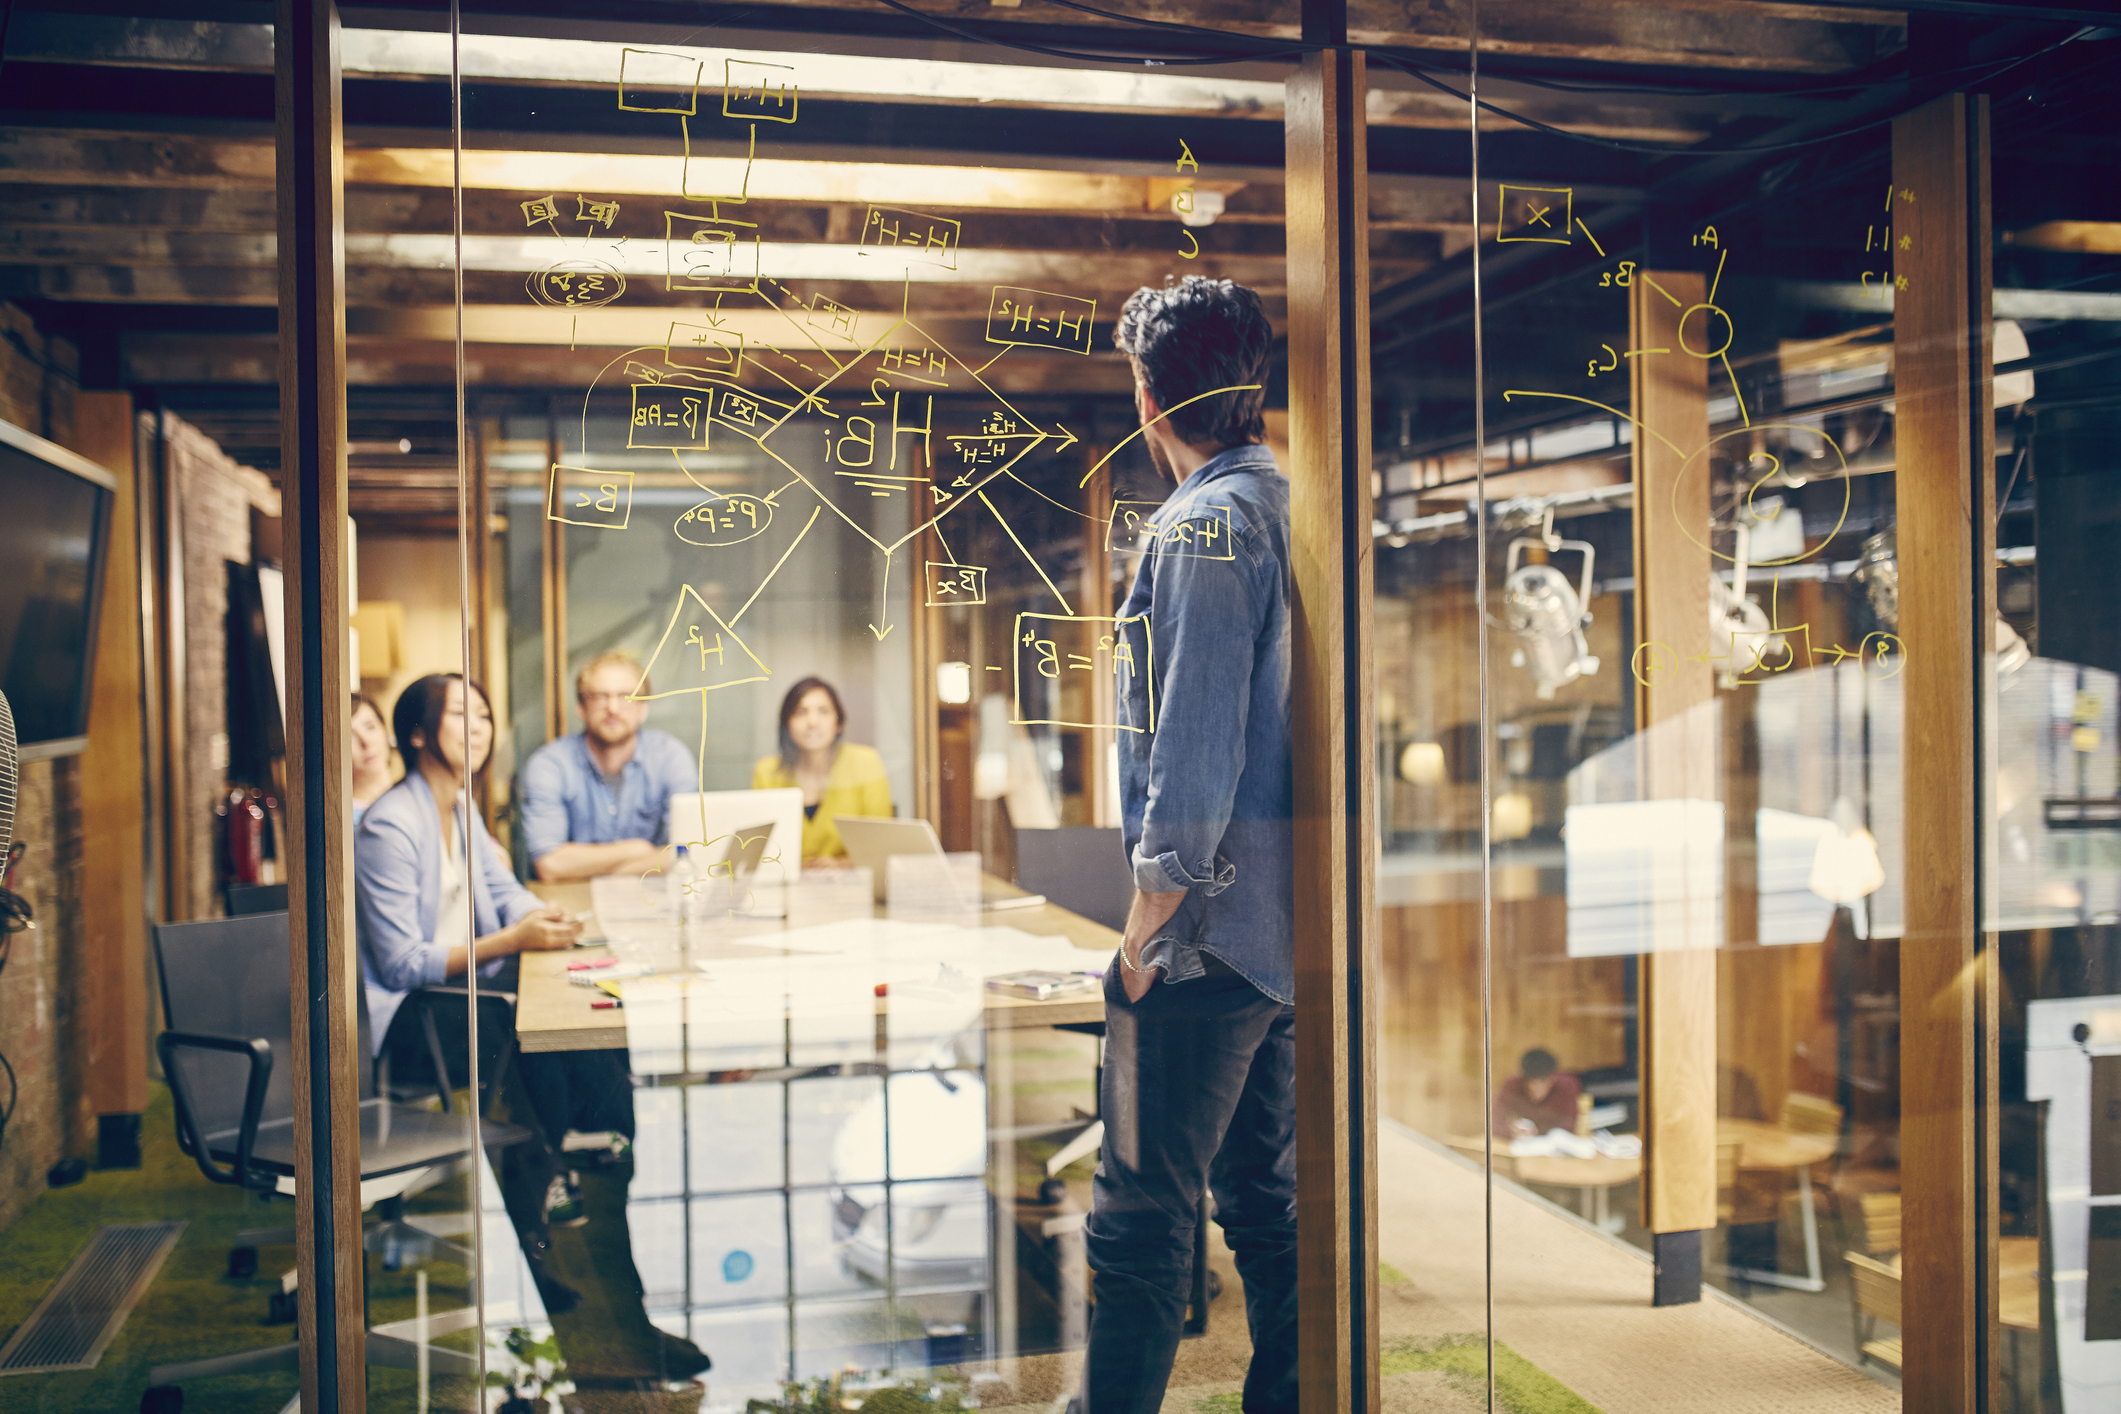 A team of young professionals discuss a project in modern office meeting room.